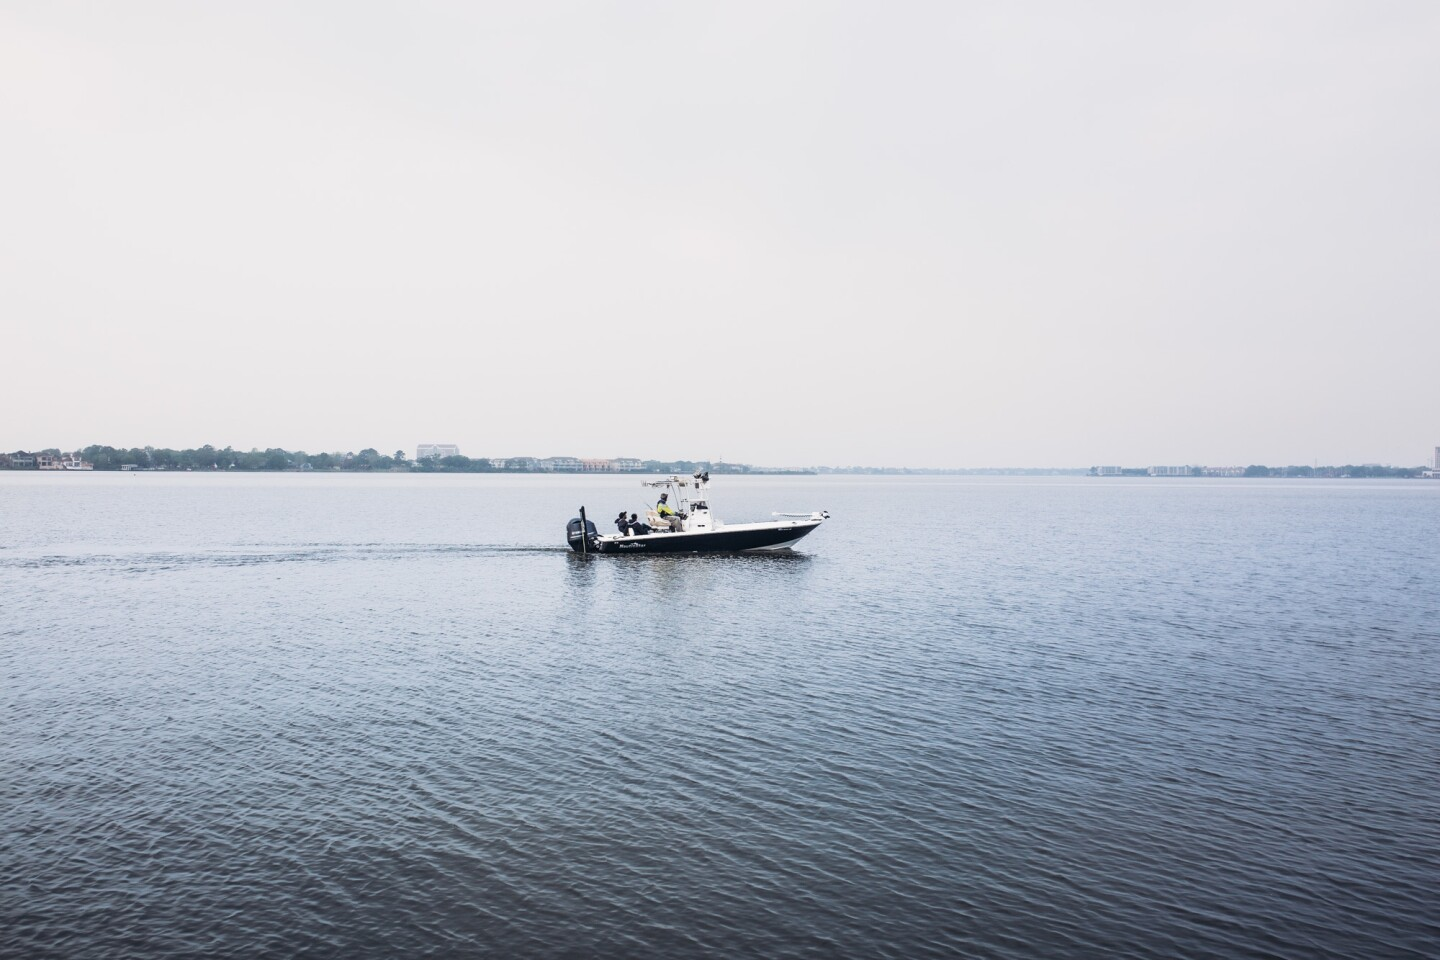 A fishing boat ventures out on a clear, dark blue water. The sky above is gloomy and gray.